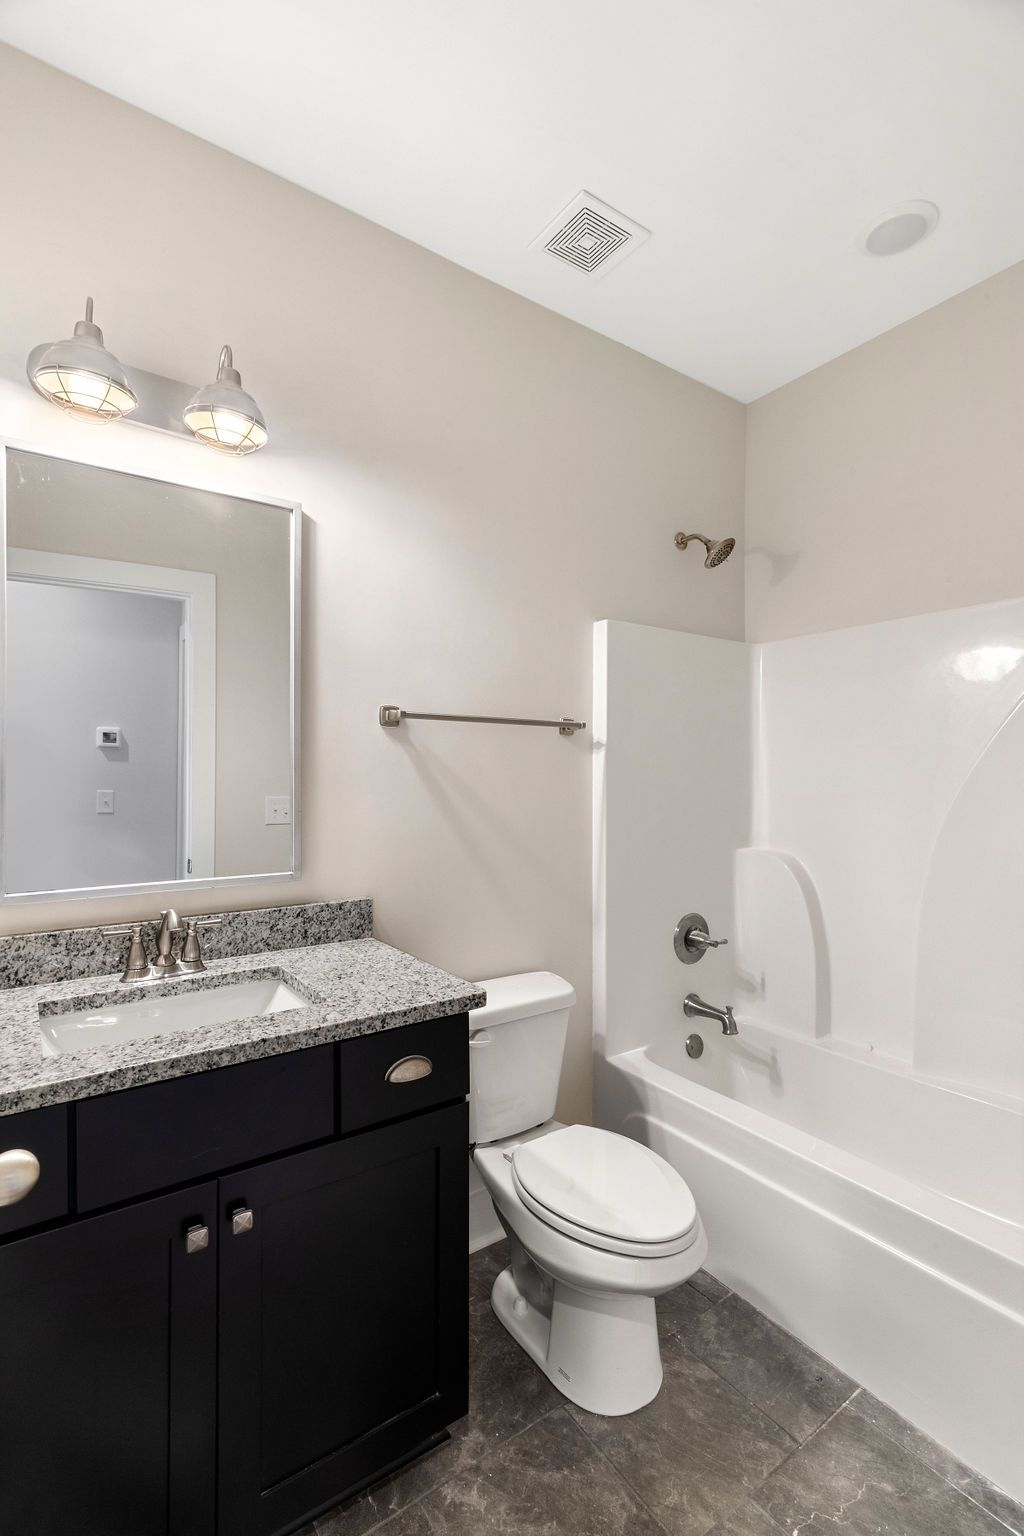 Bathroom featured in the Duette 2 By Holland Homes in Auburn-Opelika, AL